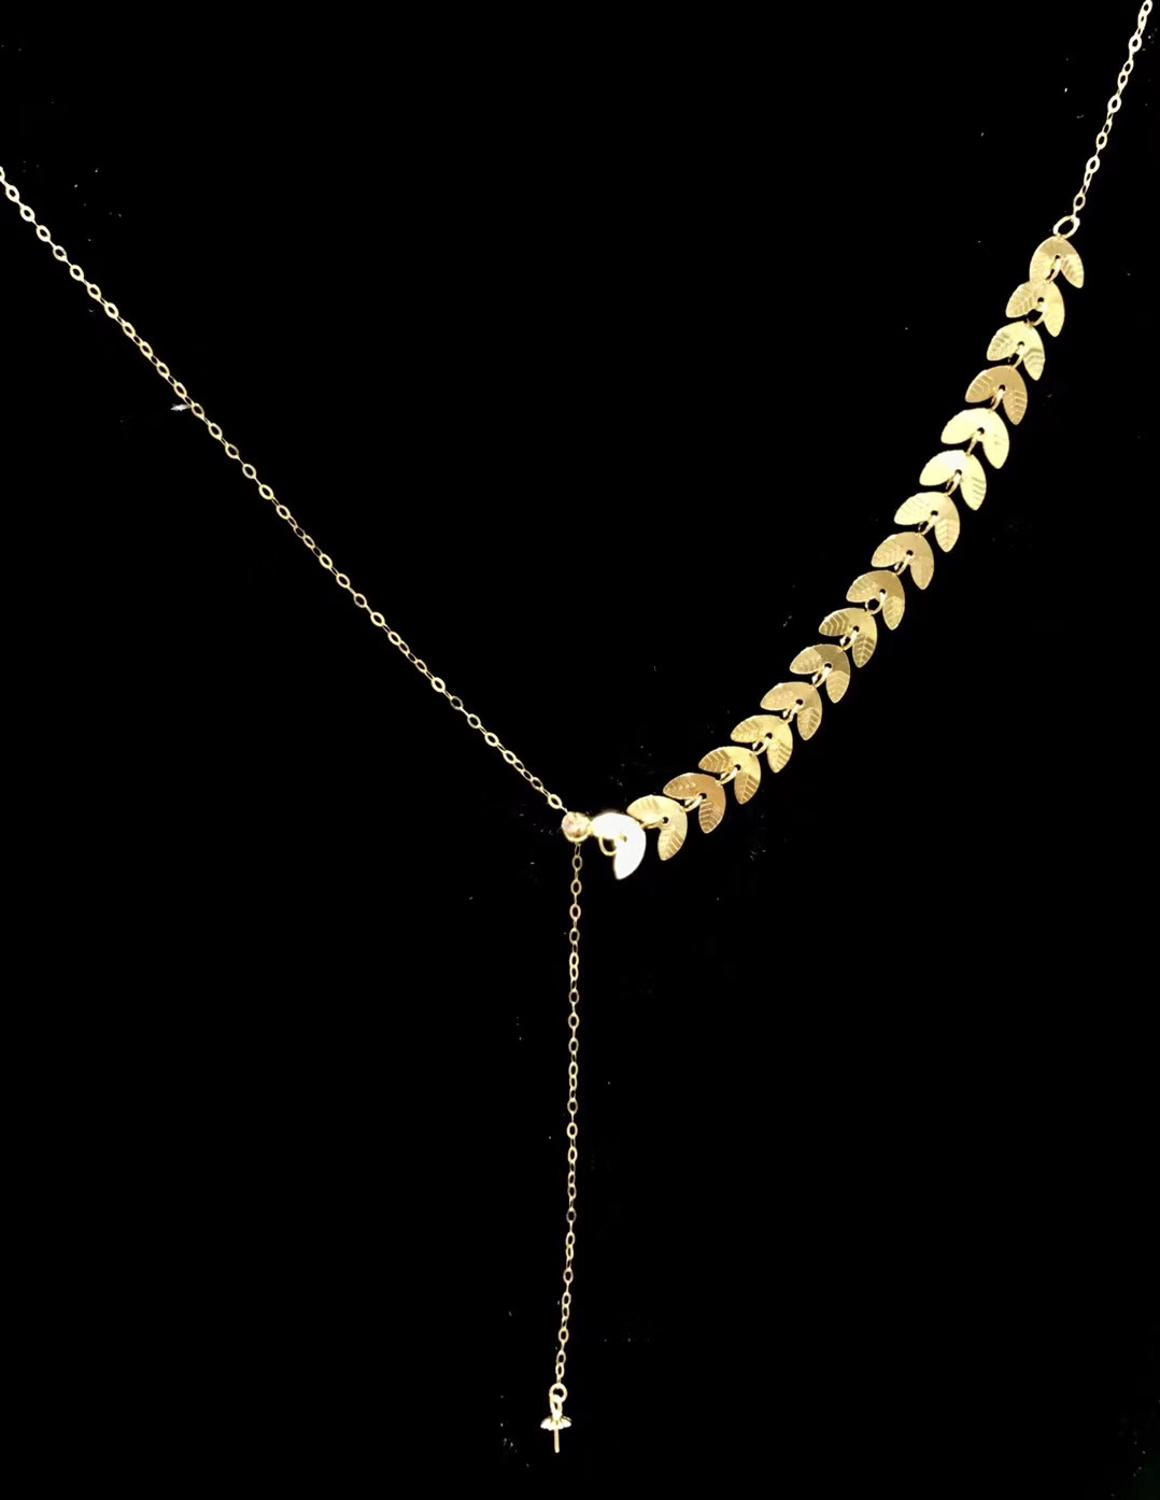 New Arrival NICE QUALITY Adjustable 18K Yellow Gold Necklace Chain Mountings Settings Fittings AU750 Jewelry Nice Women's Gift